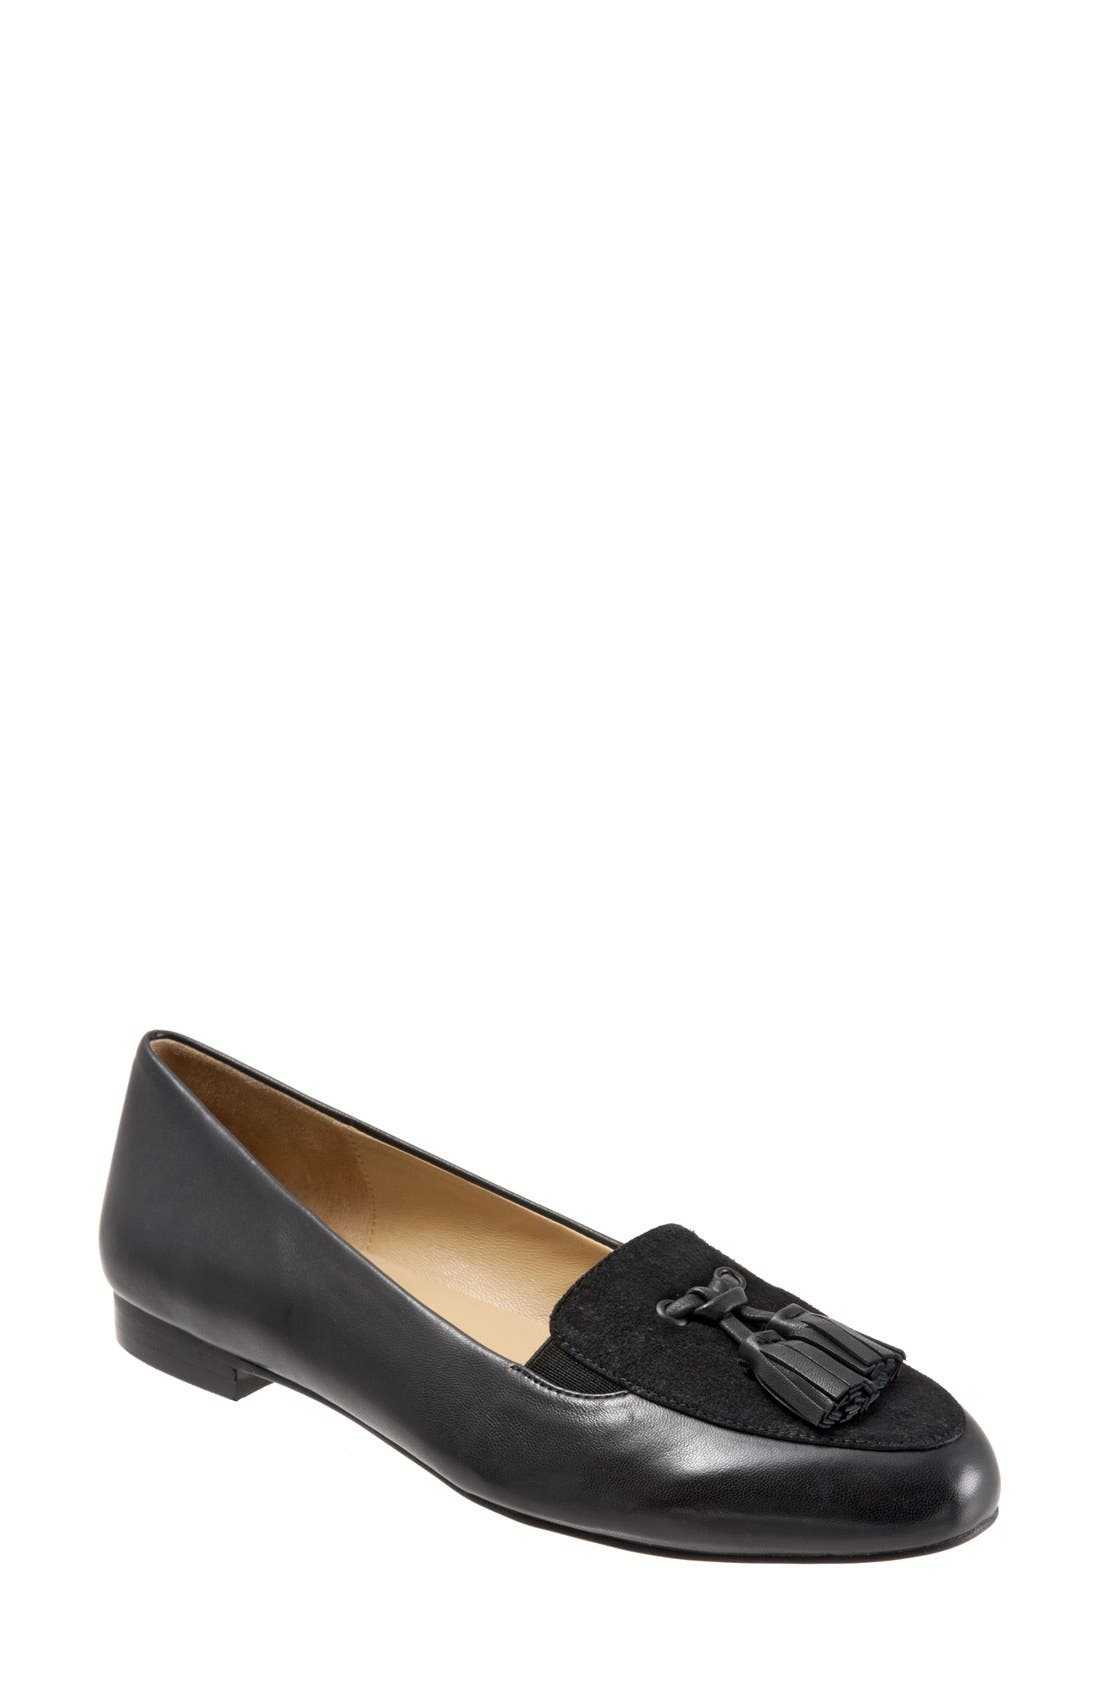 Alternate Image 1 Selected - Trotters 'Caroline' Tassel Loafer (Women)